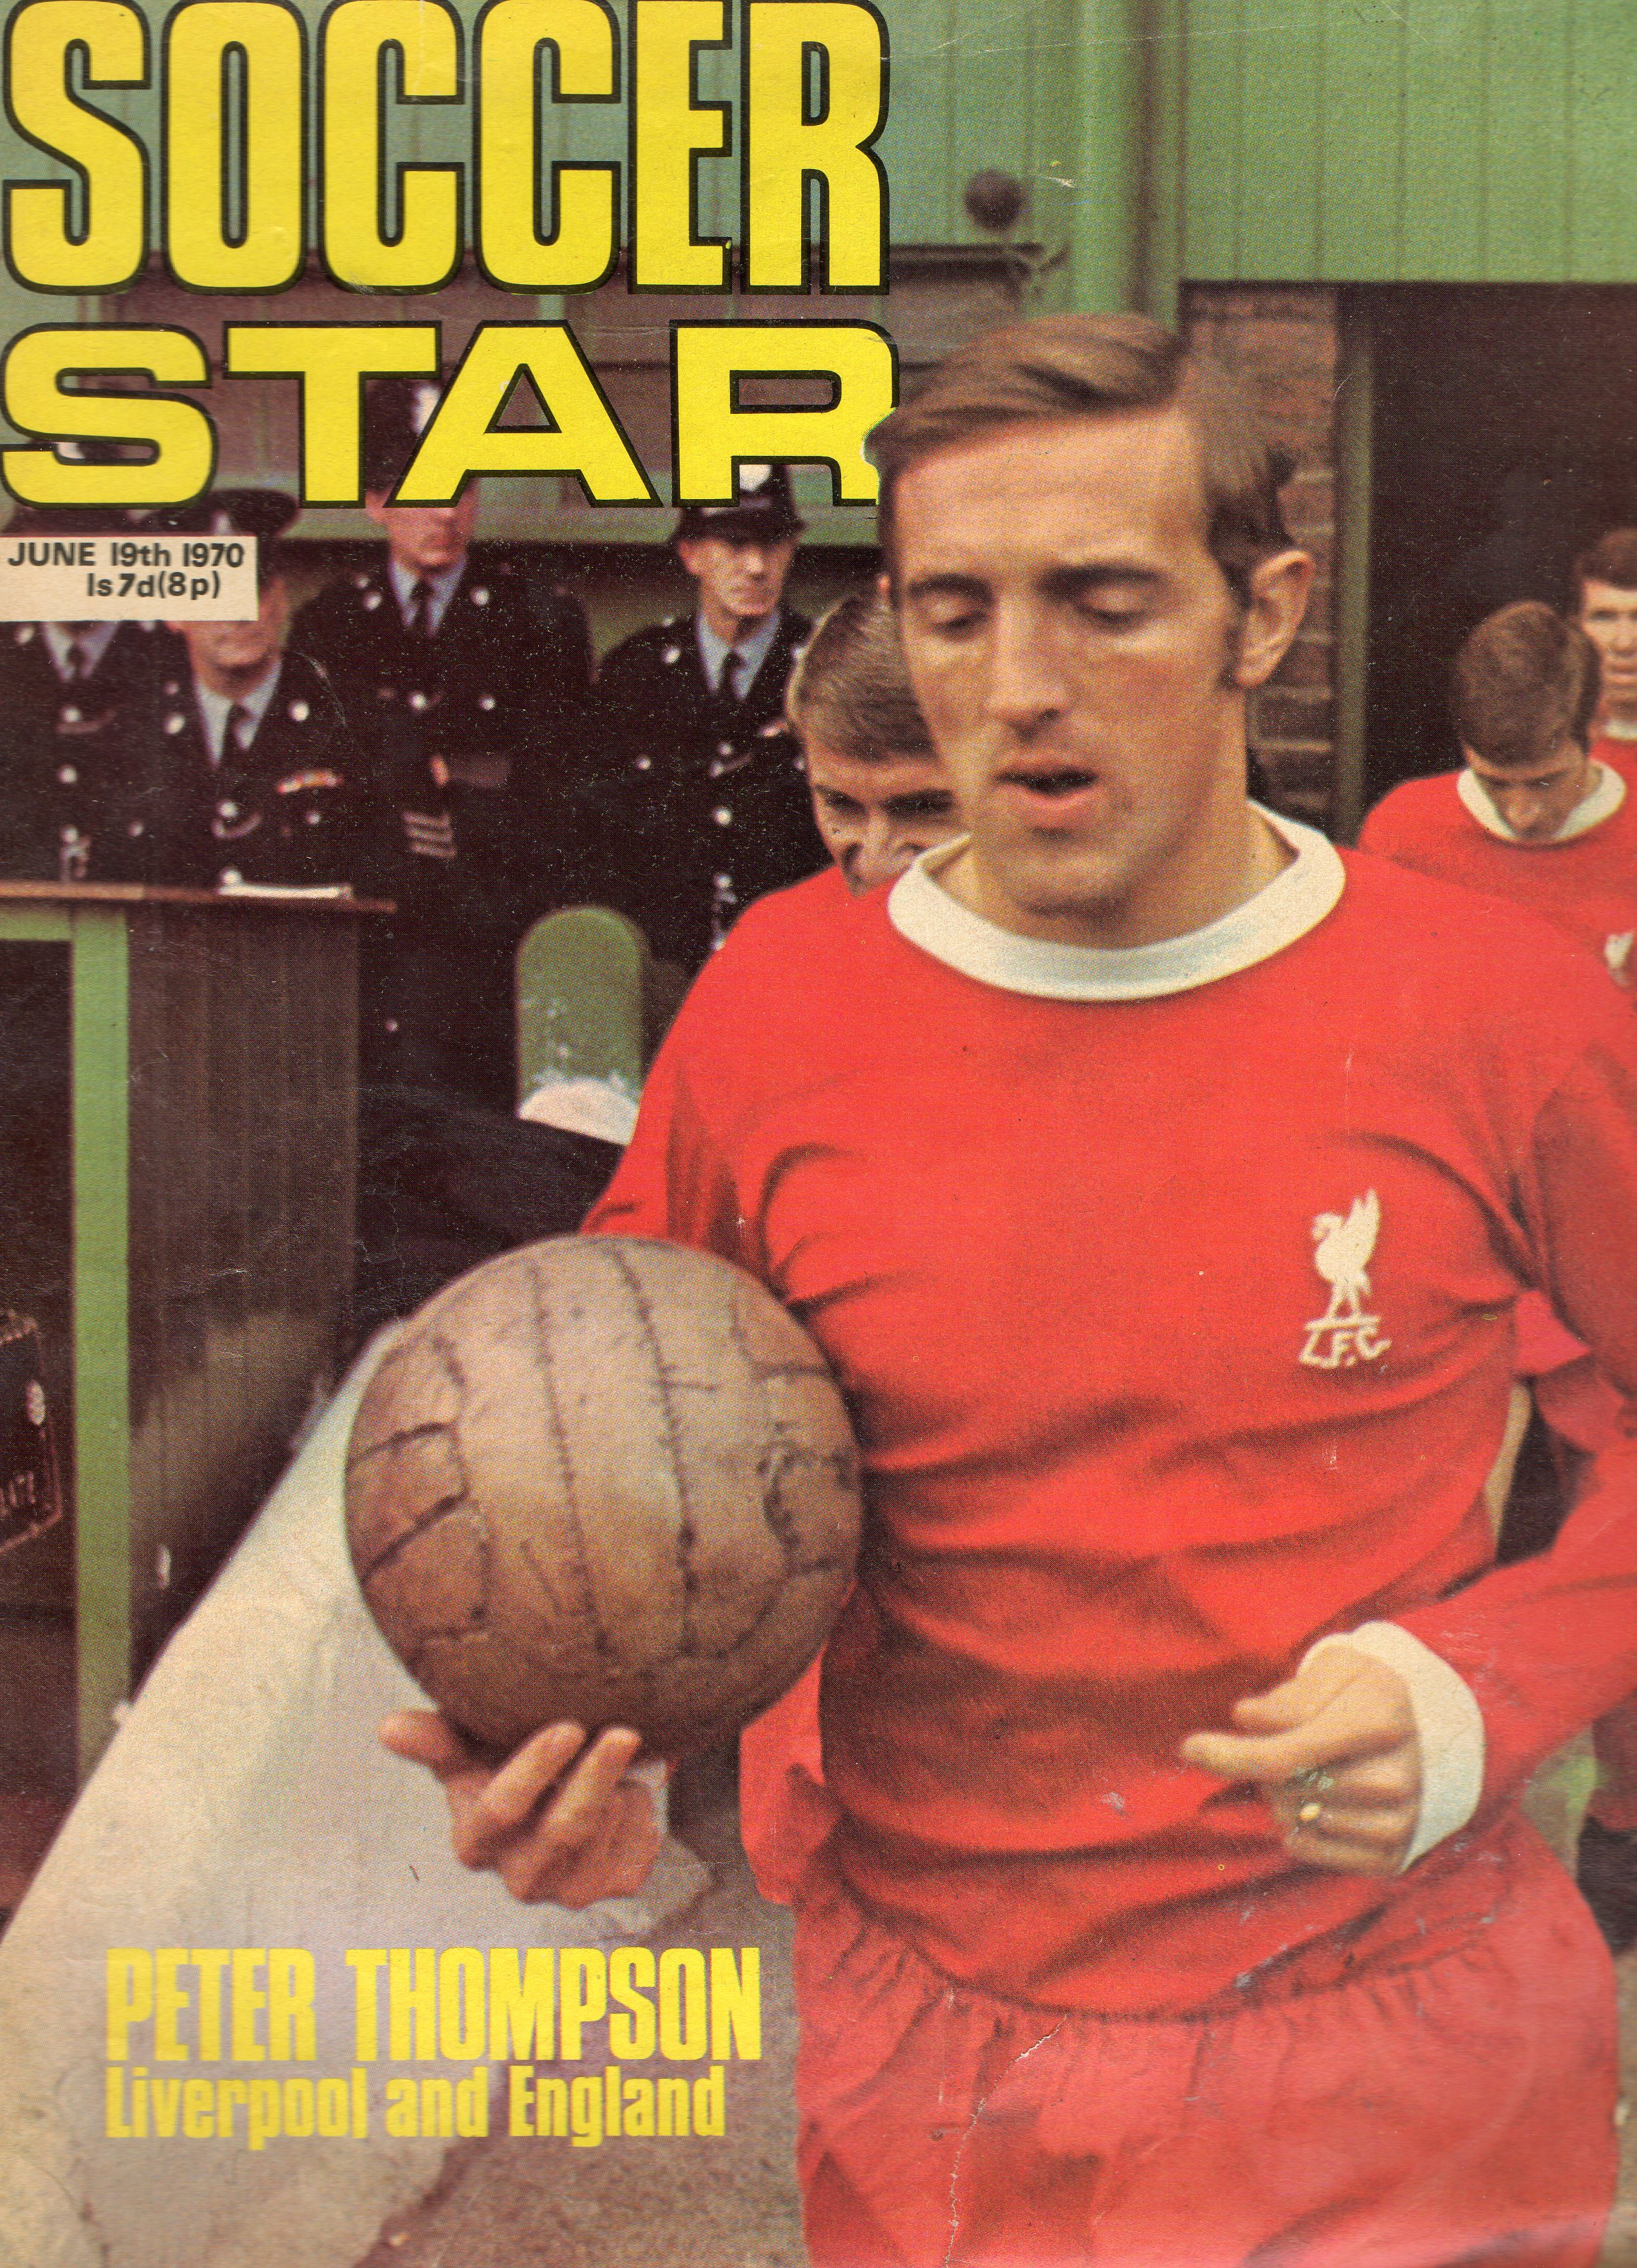 Thompson on the cover of Soccerstar - 19 June 1970